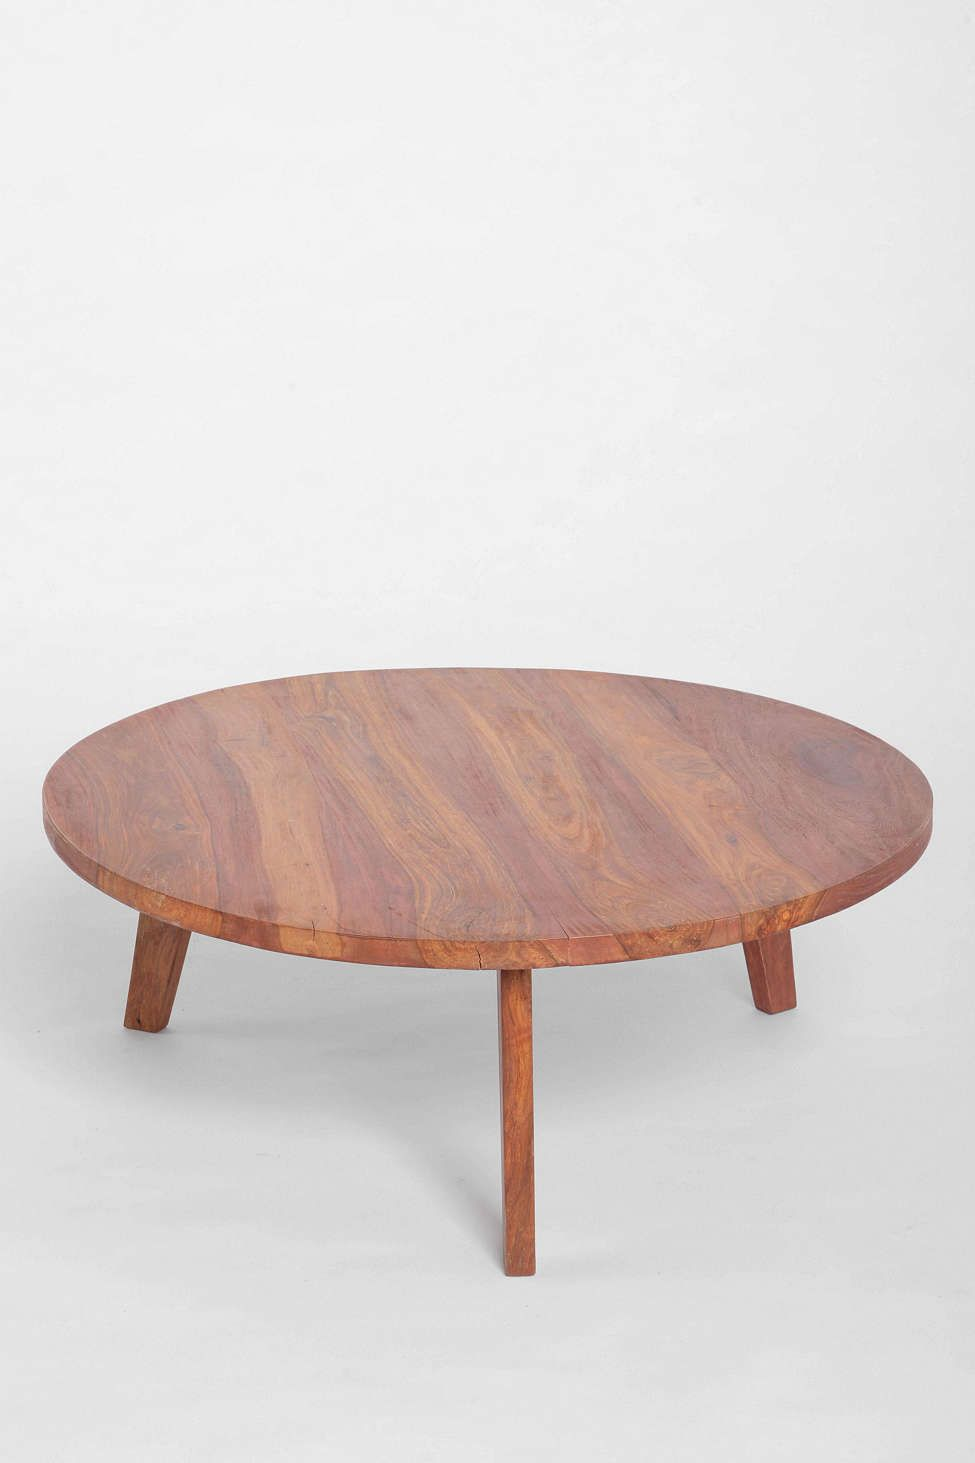 Round Modern Coffee Table Round Coffee Table Modern Coffee Table Coffee Table Urban Outfitters [ 1463 x 975 Pixel ]